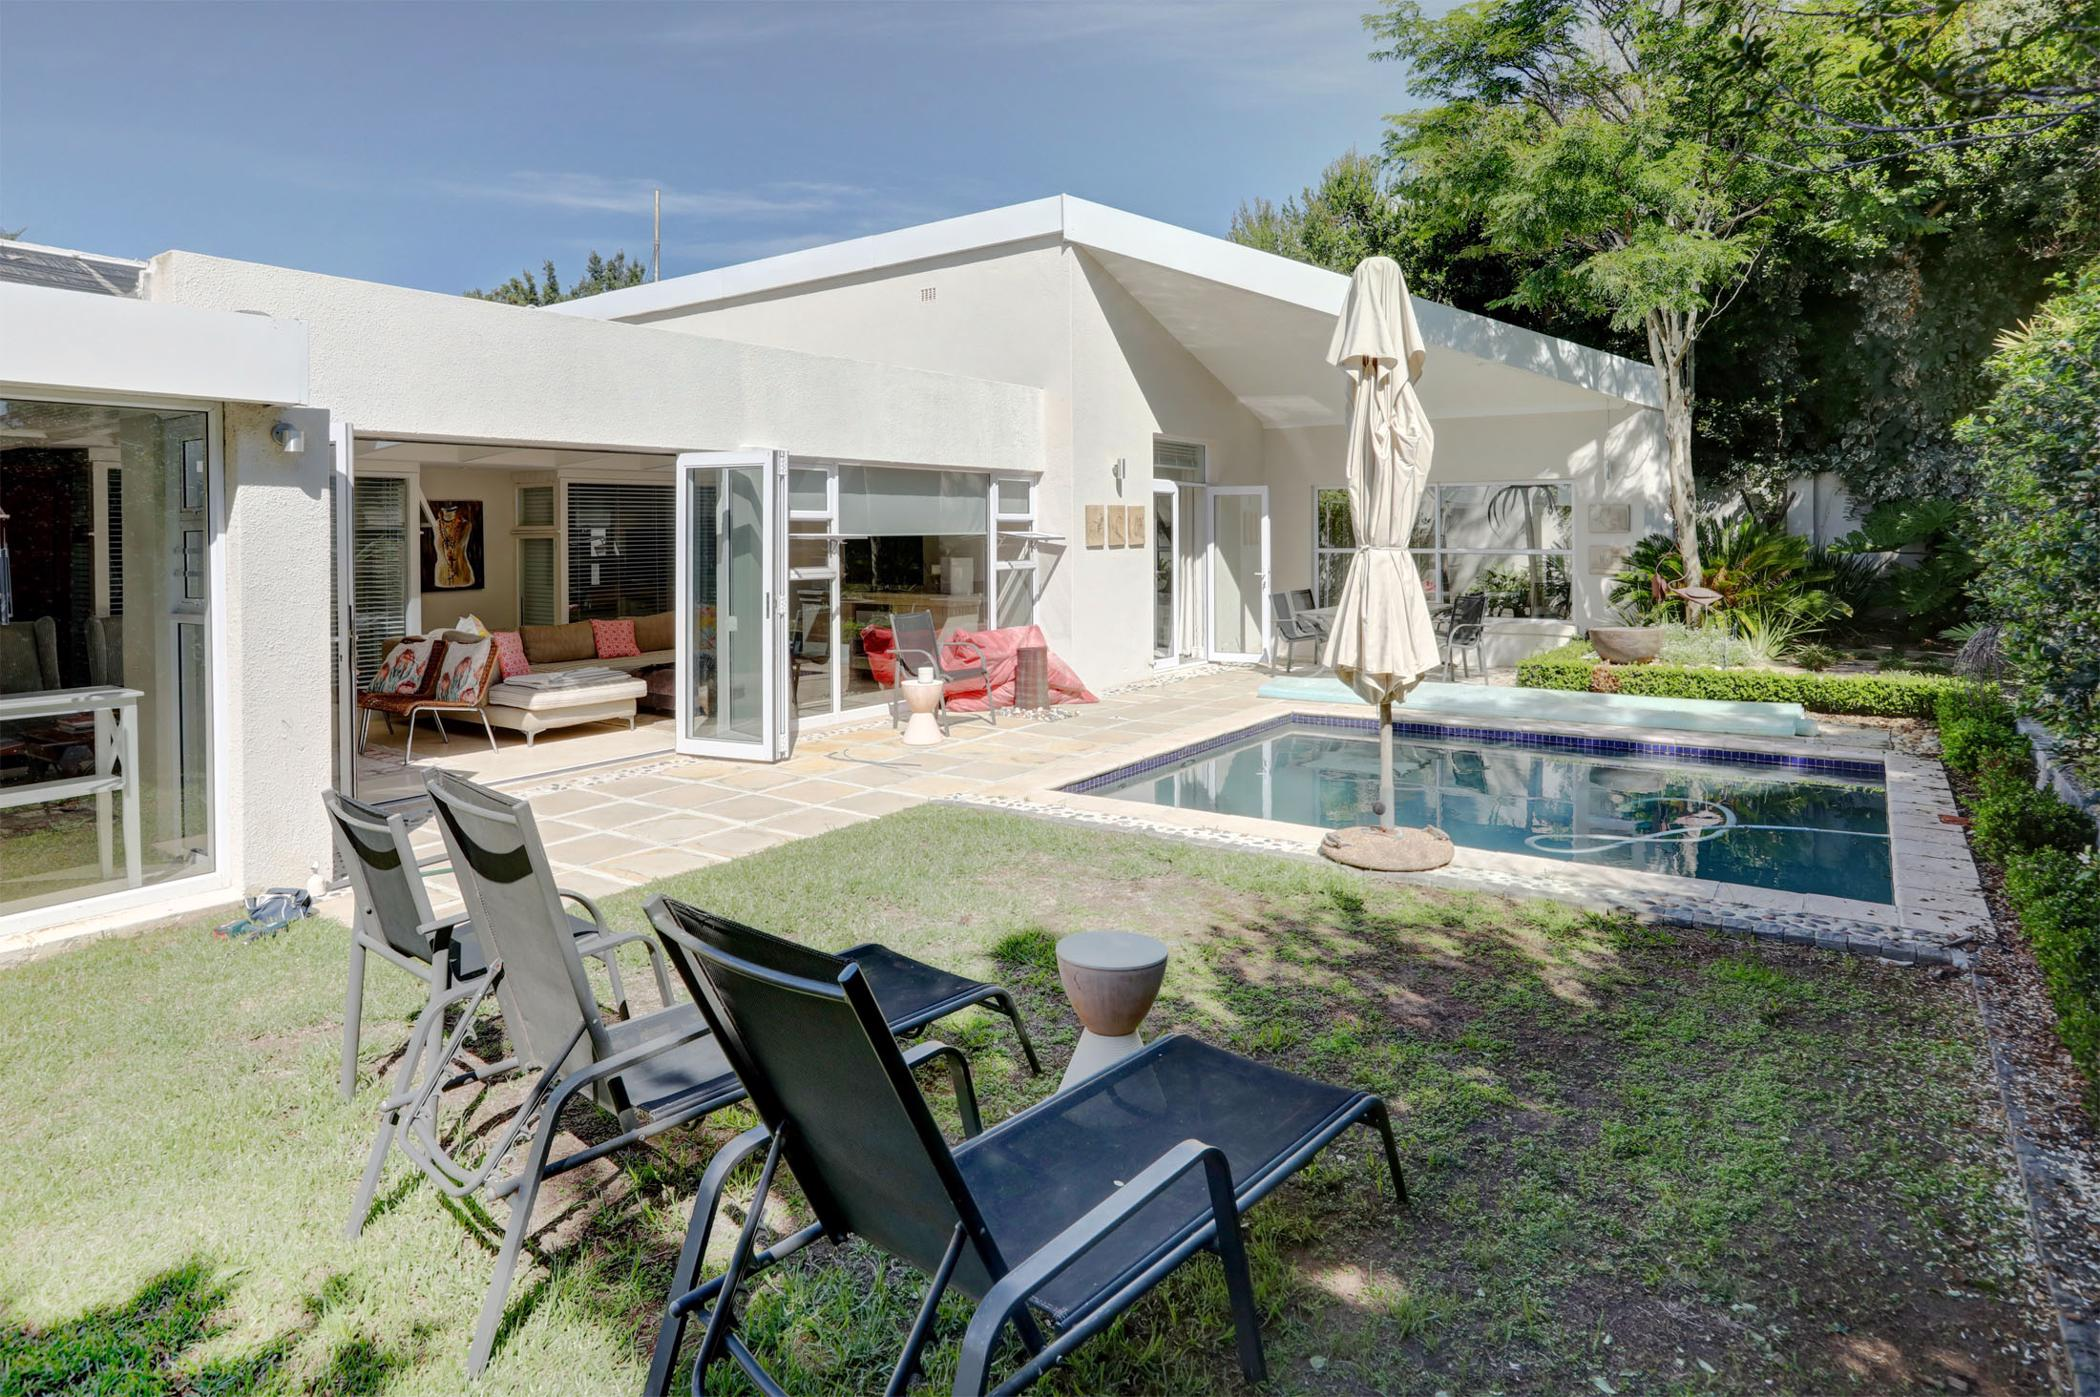 https://listing.pamgolding.co.za/images/properties/201904/1295393/H/1295393_H_3.jpg